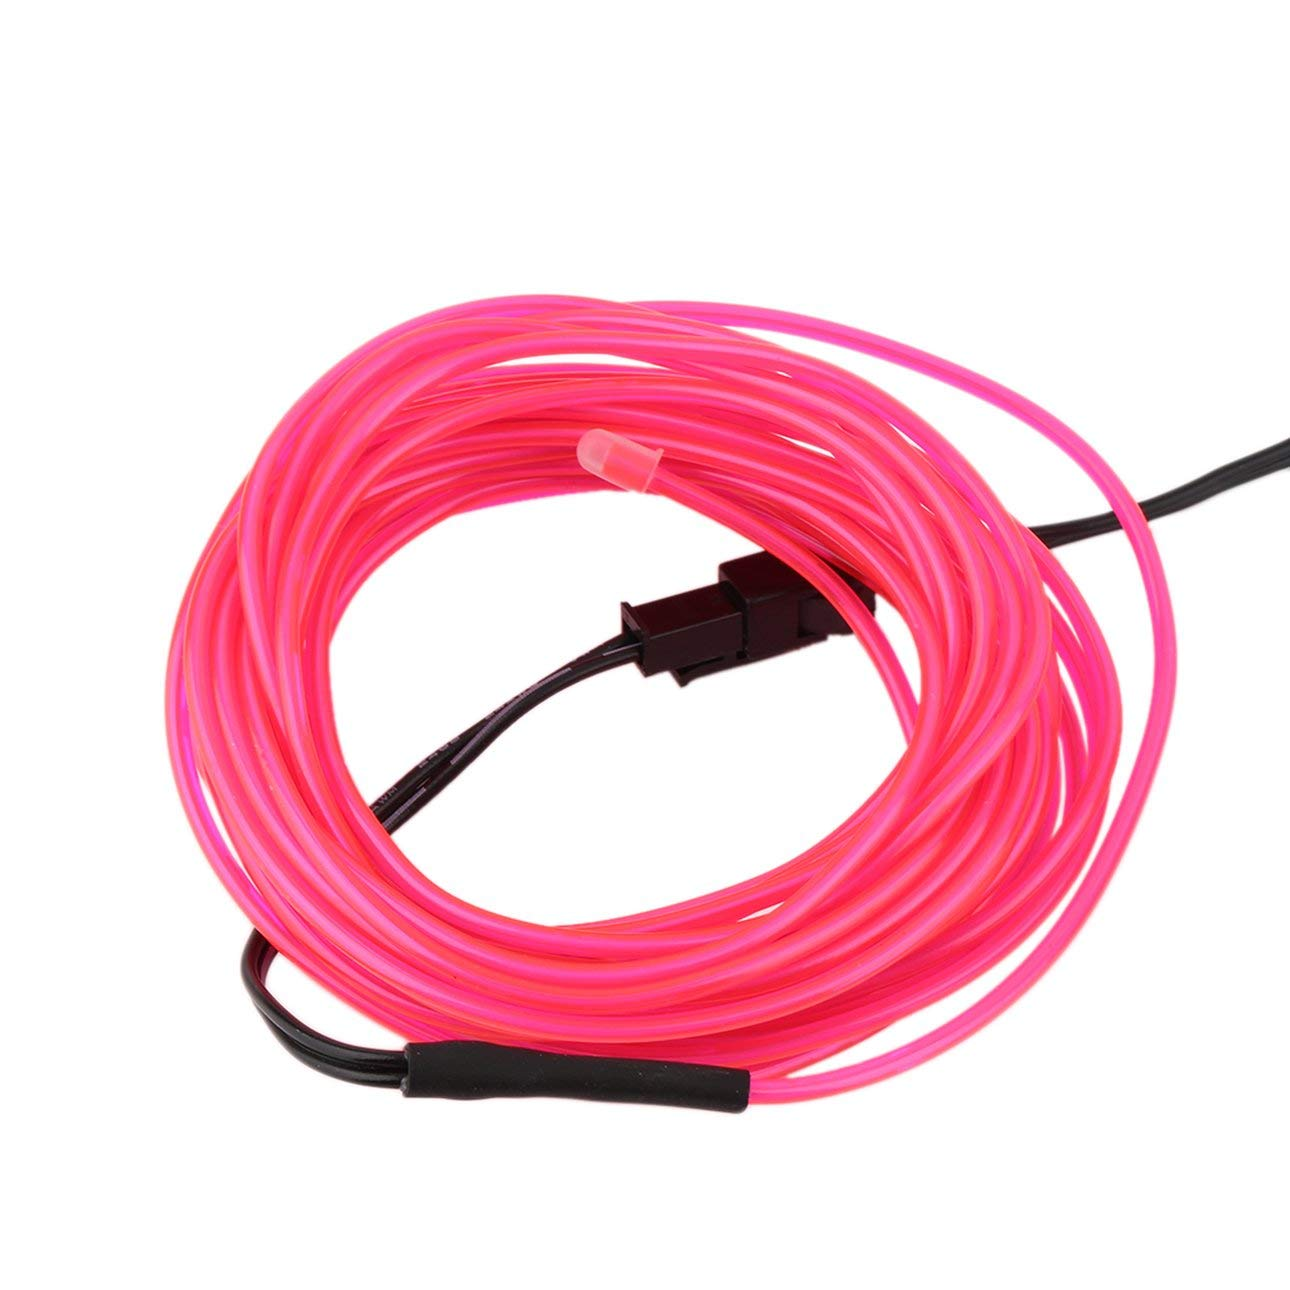 Liobaba 5M Colorful Flexible EL Wire Tube Rope Neon Light Glow Controller Party Decor